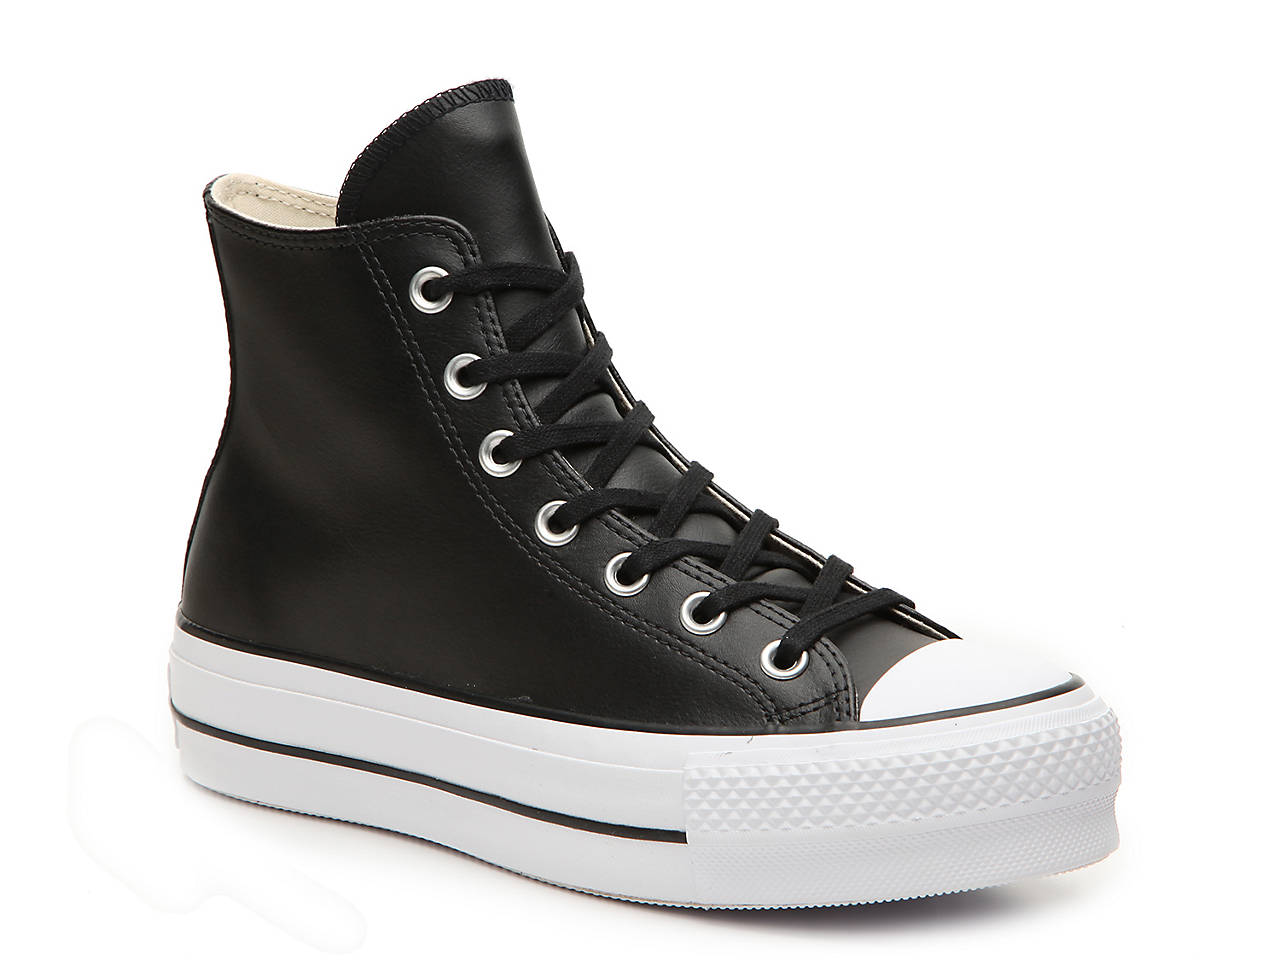 b07f0877f65 Converse Chuck Taylor All Star High-Top Platform Sneaker - Women s ...